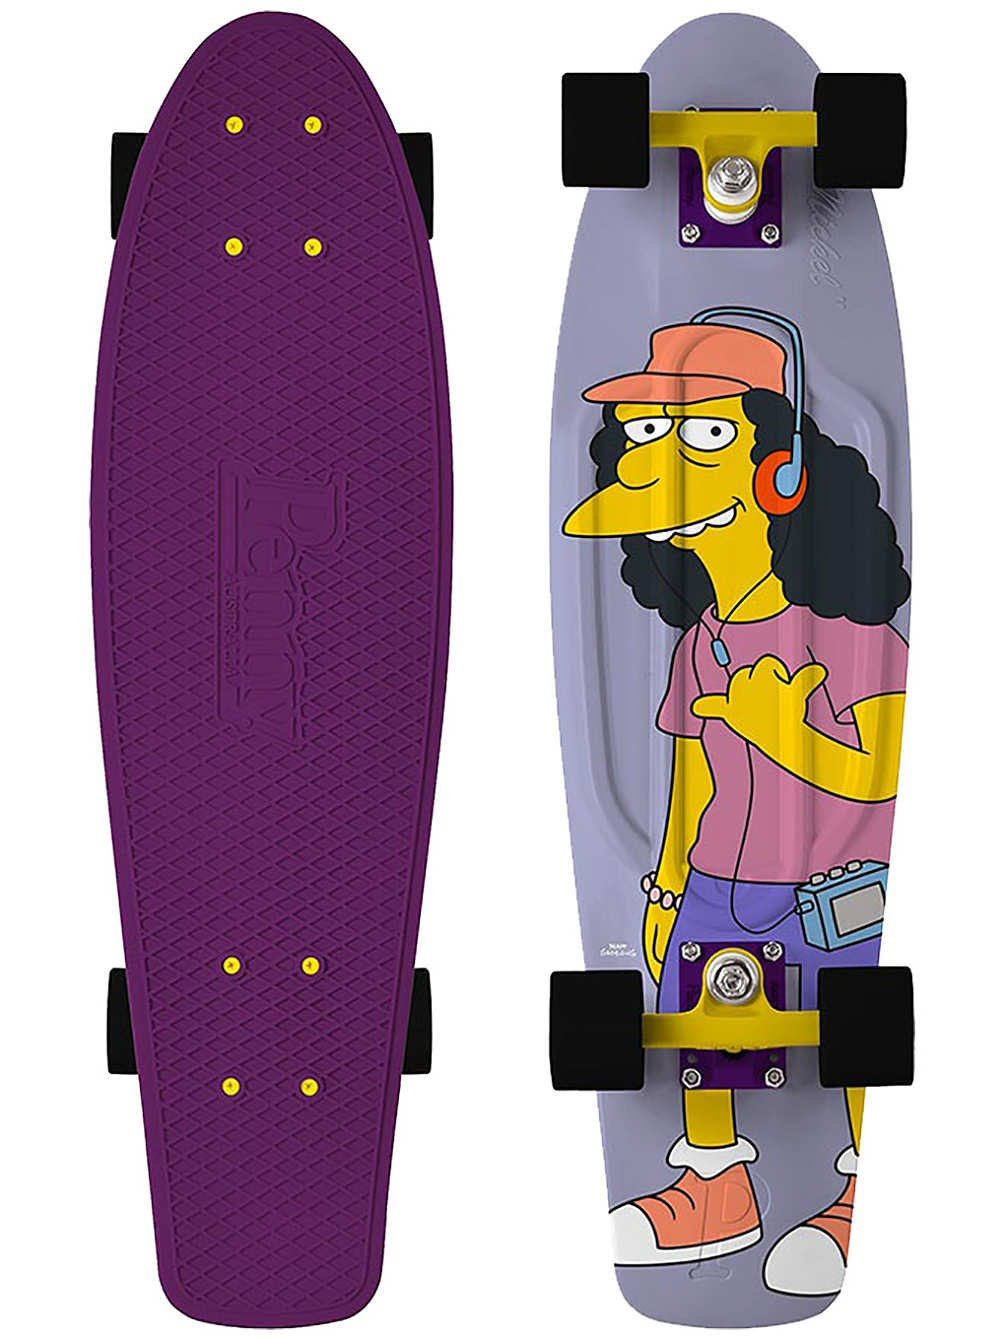 Penny - Simpsons Nickel 27 - rock on little dudes! - penny boards